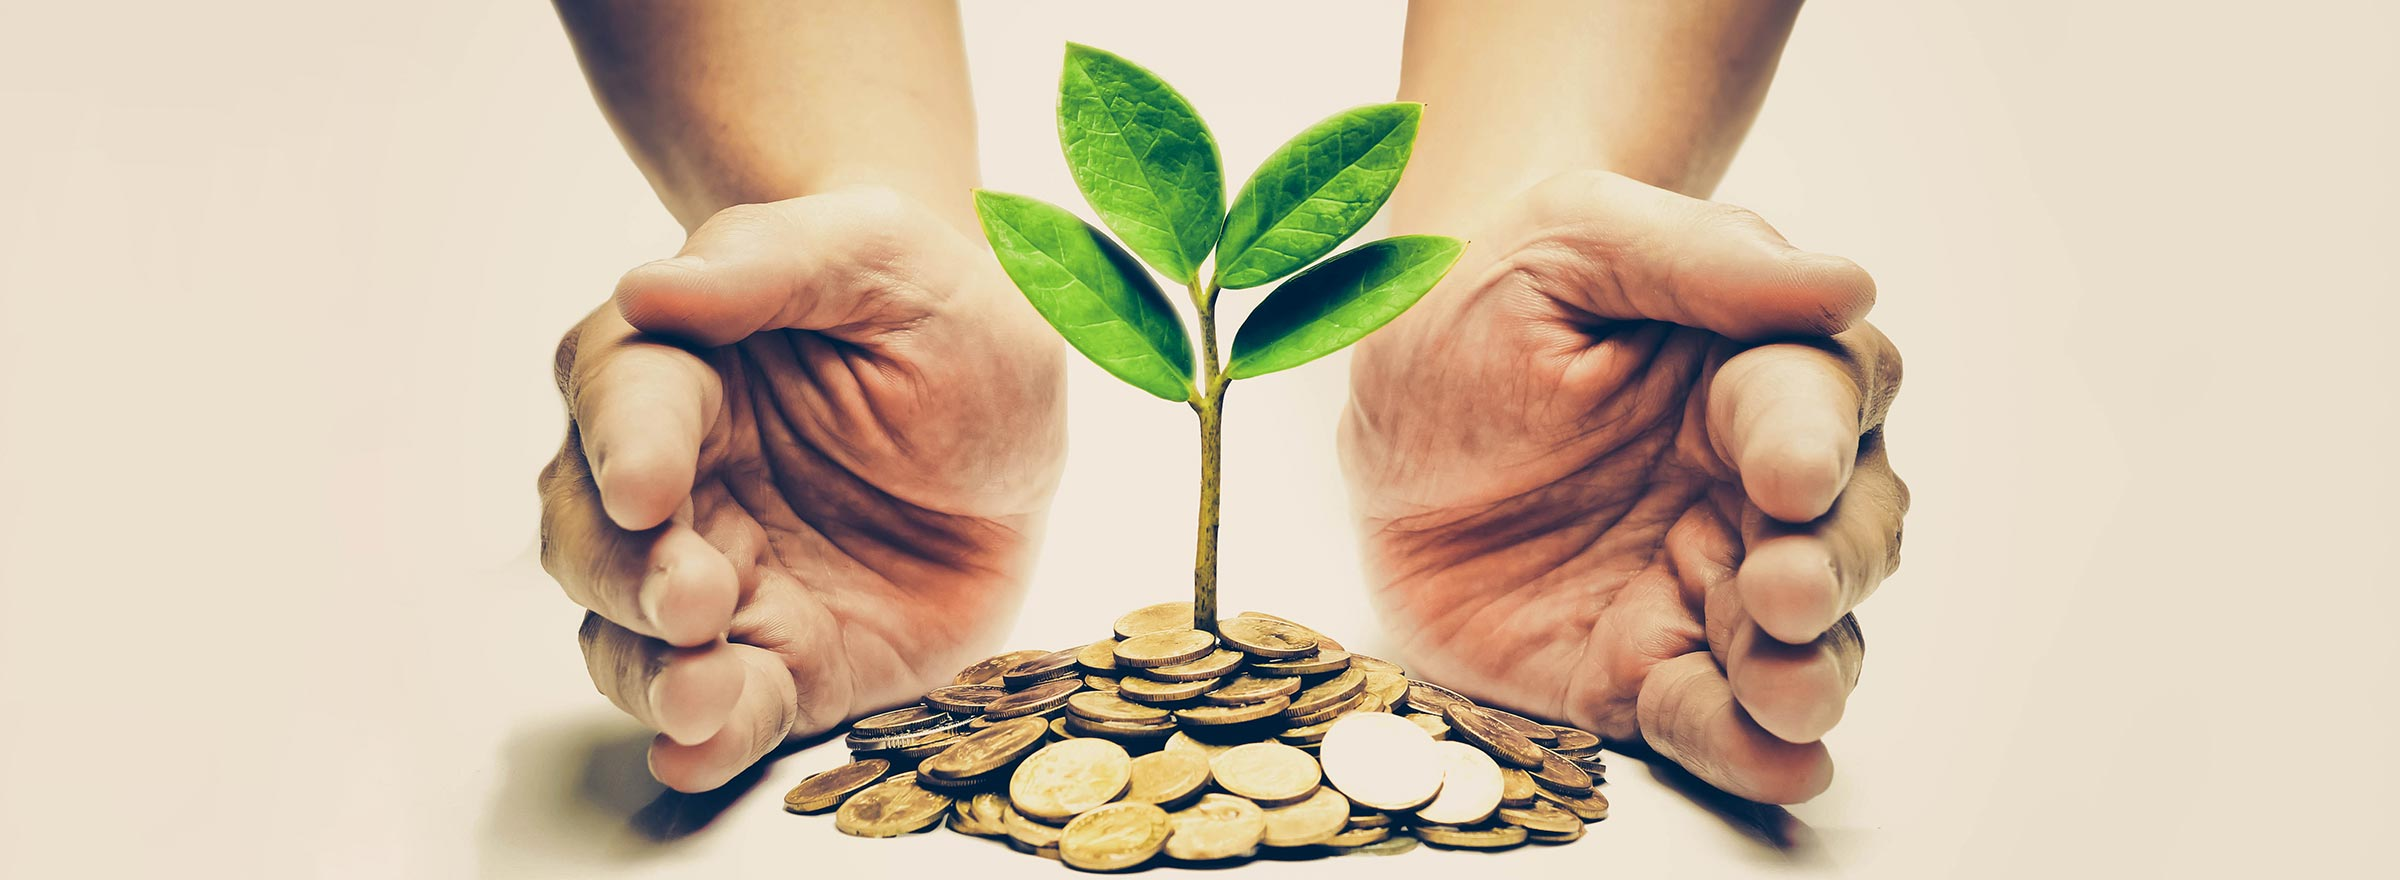 person's hands cupped around a seedling on top of coins